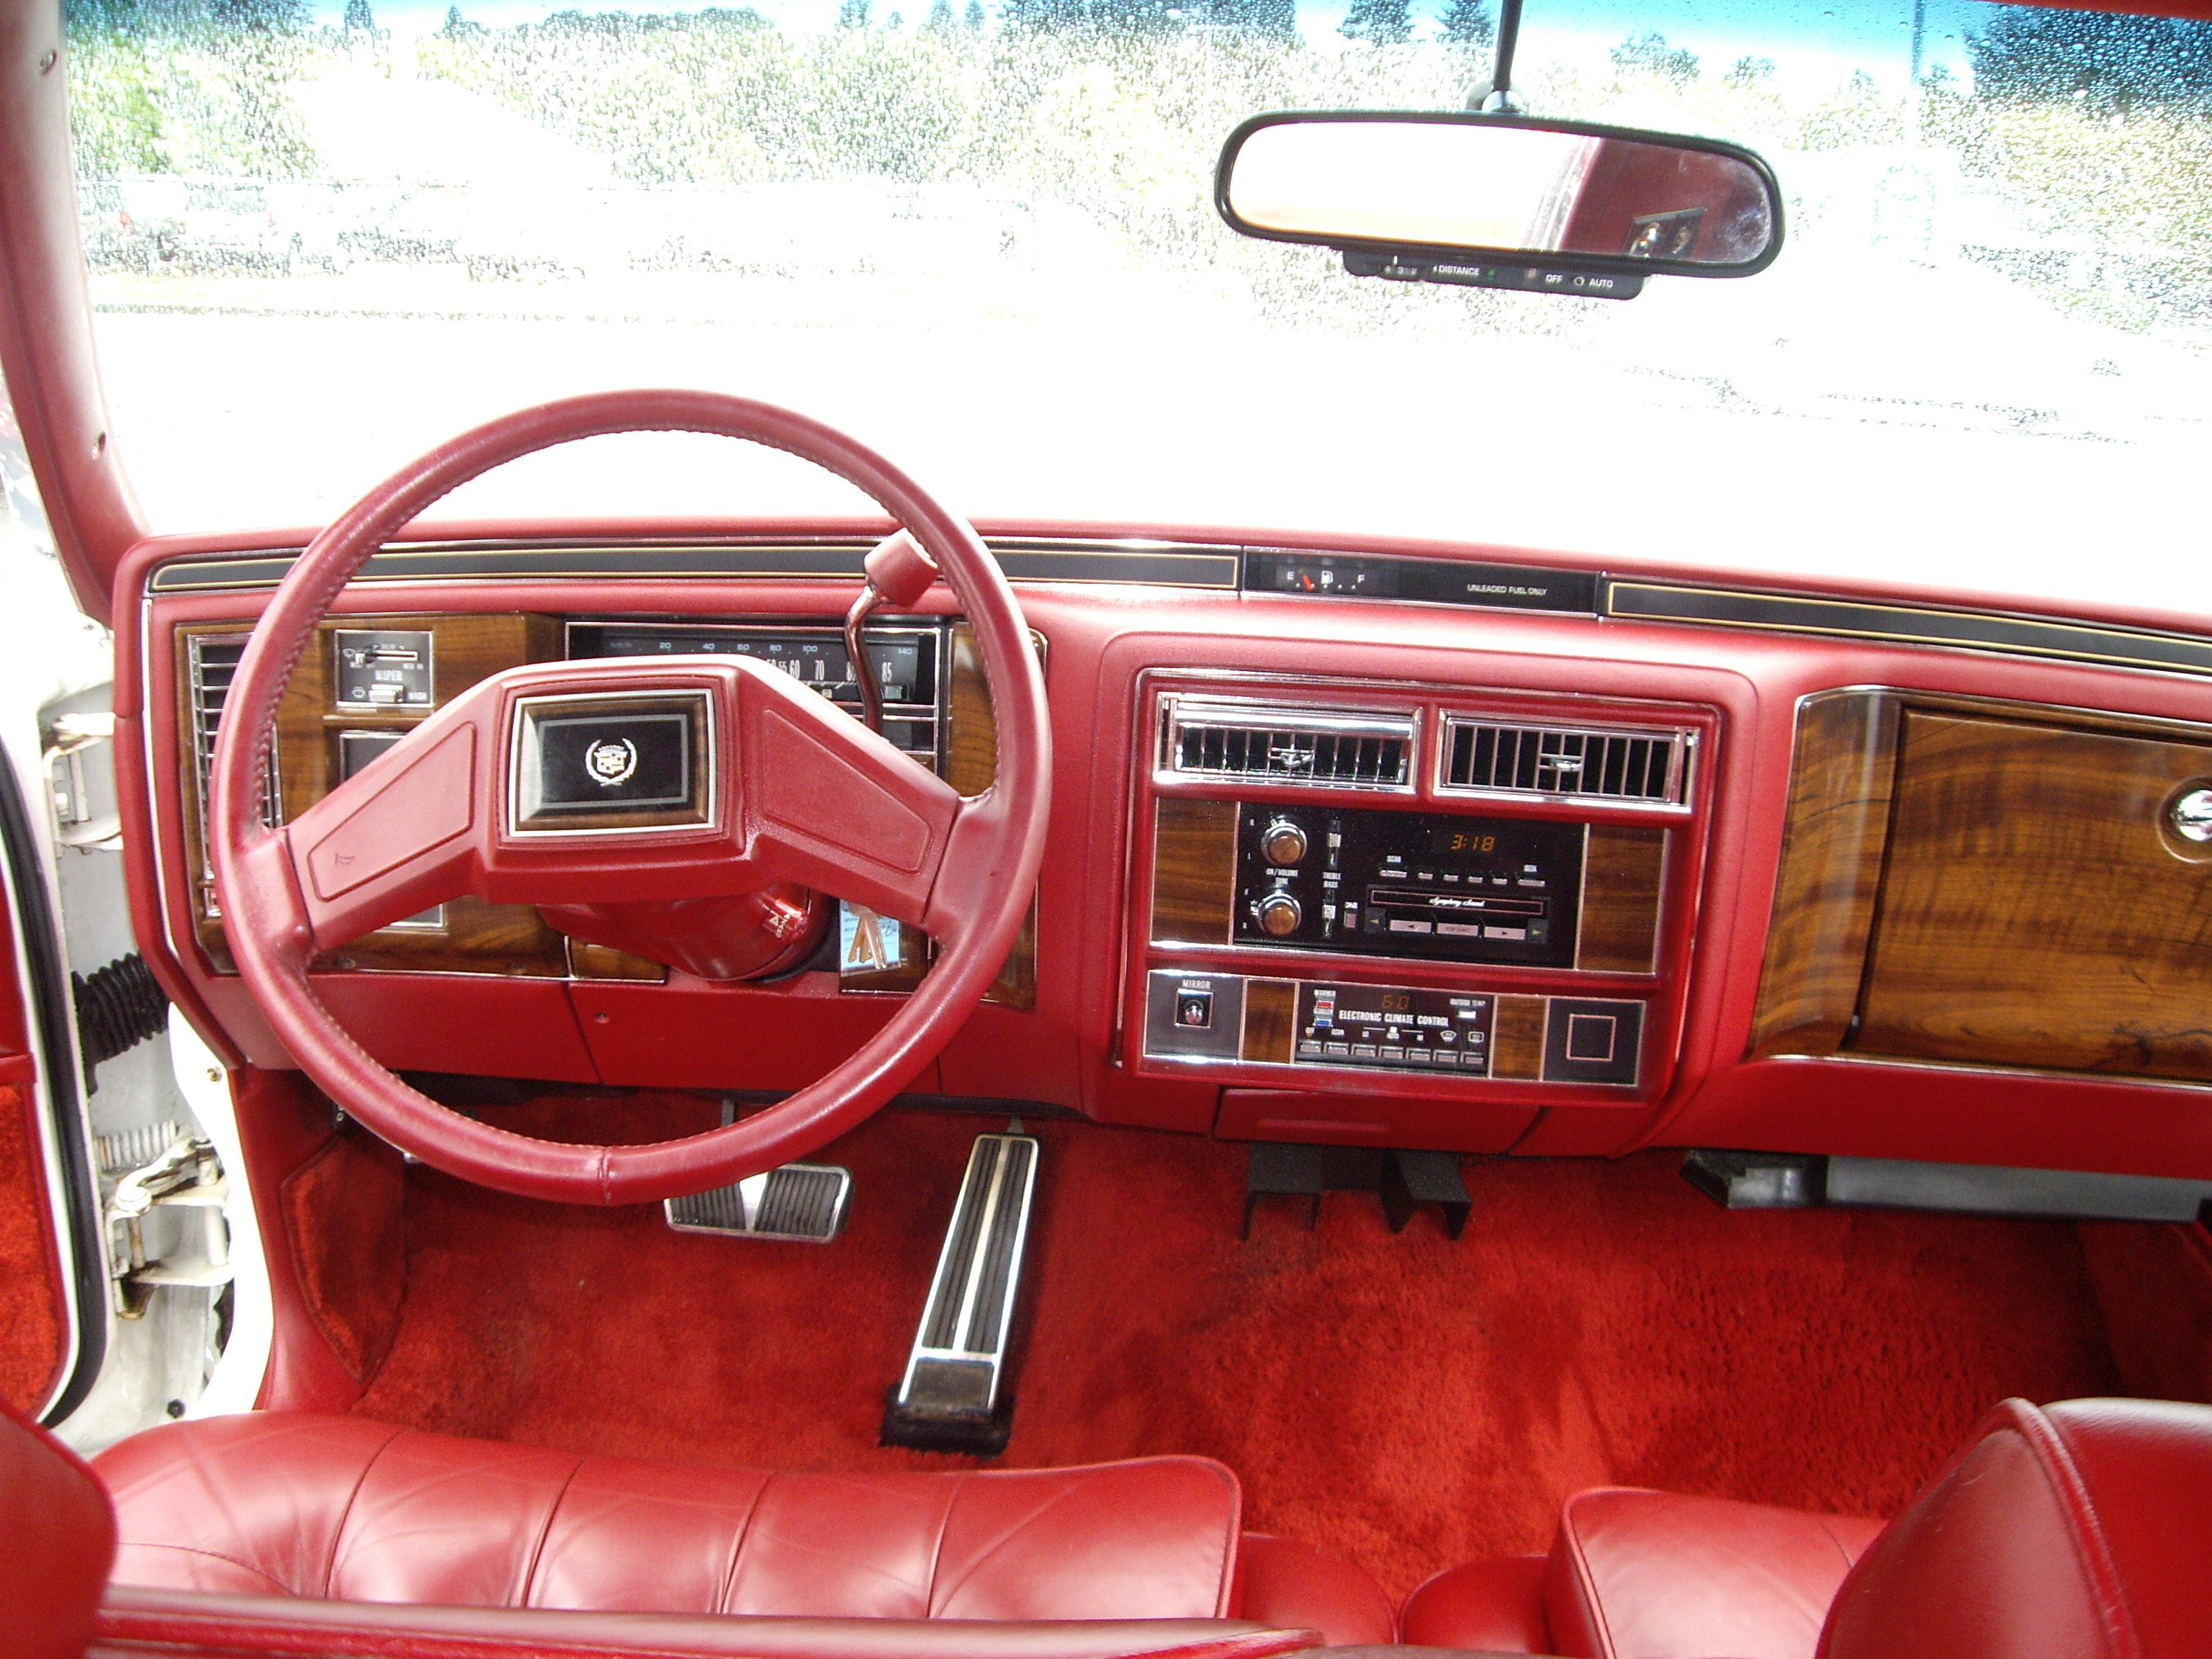 Cadillac Fleetwood interior #2